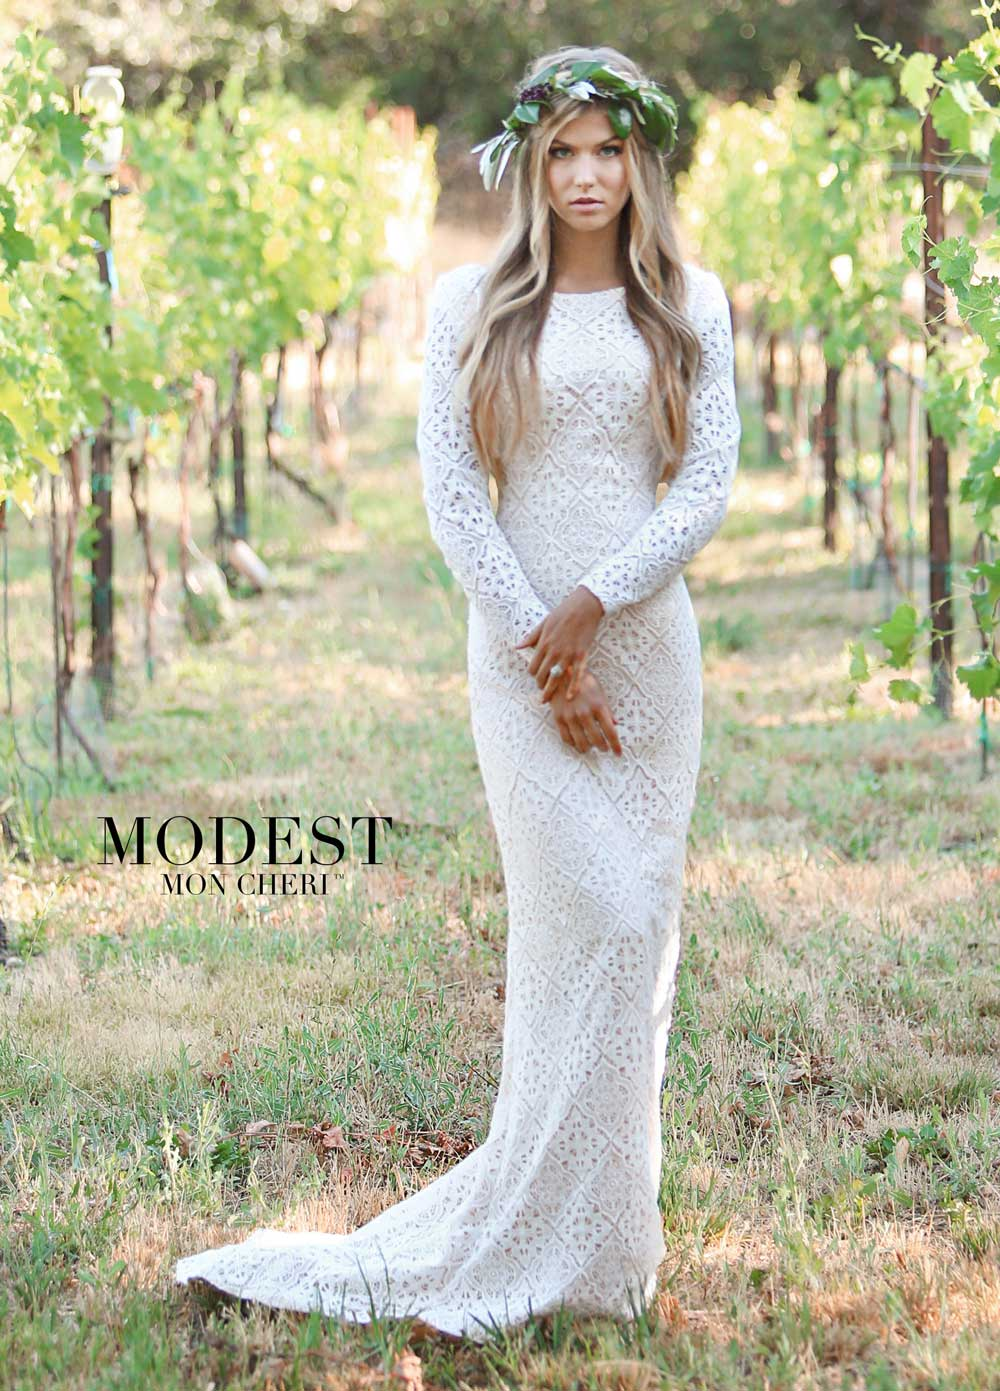 Modest by Mon Cheri • Bridal Gowns • Sacramento Bride & Groom